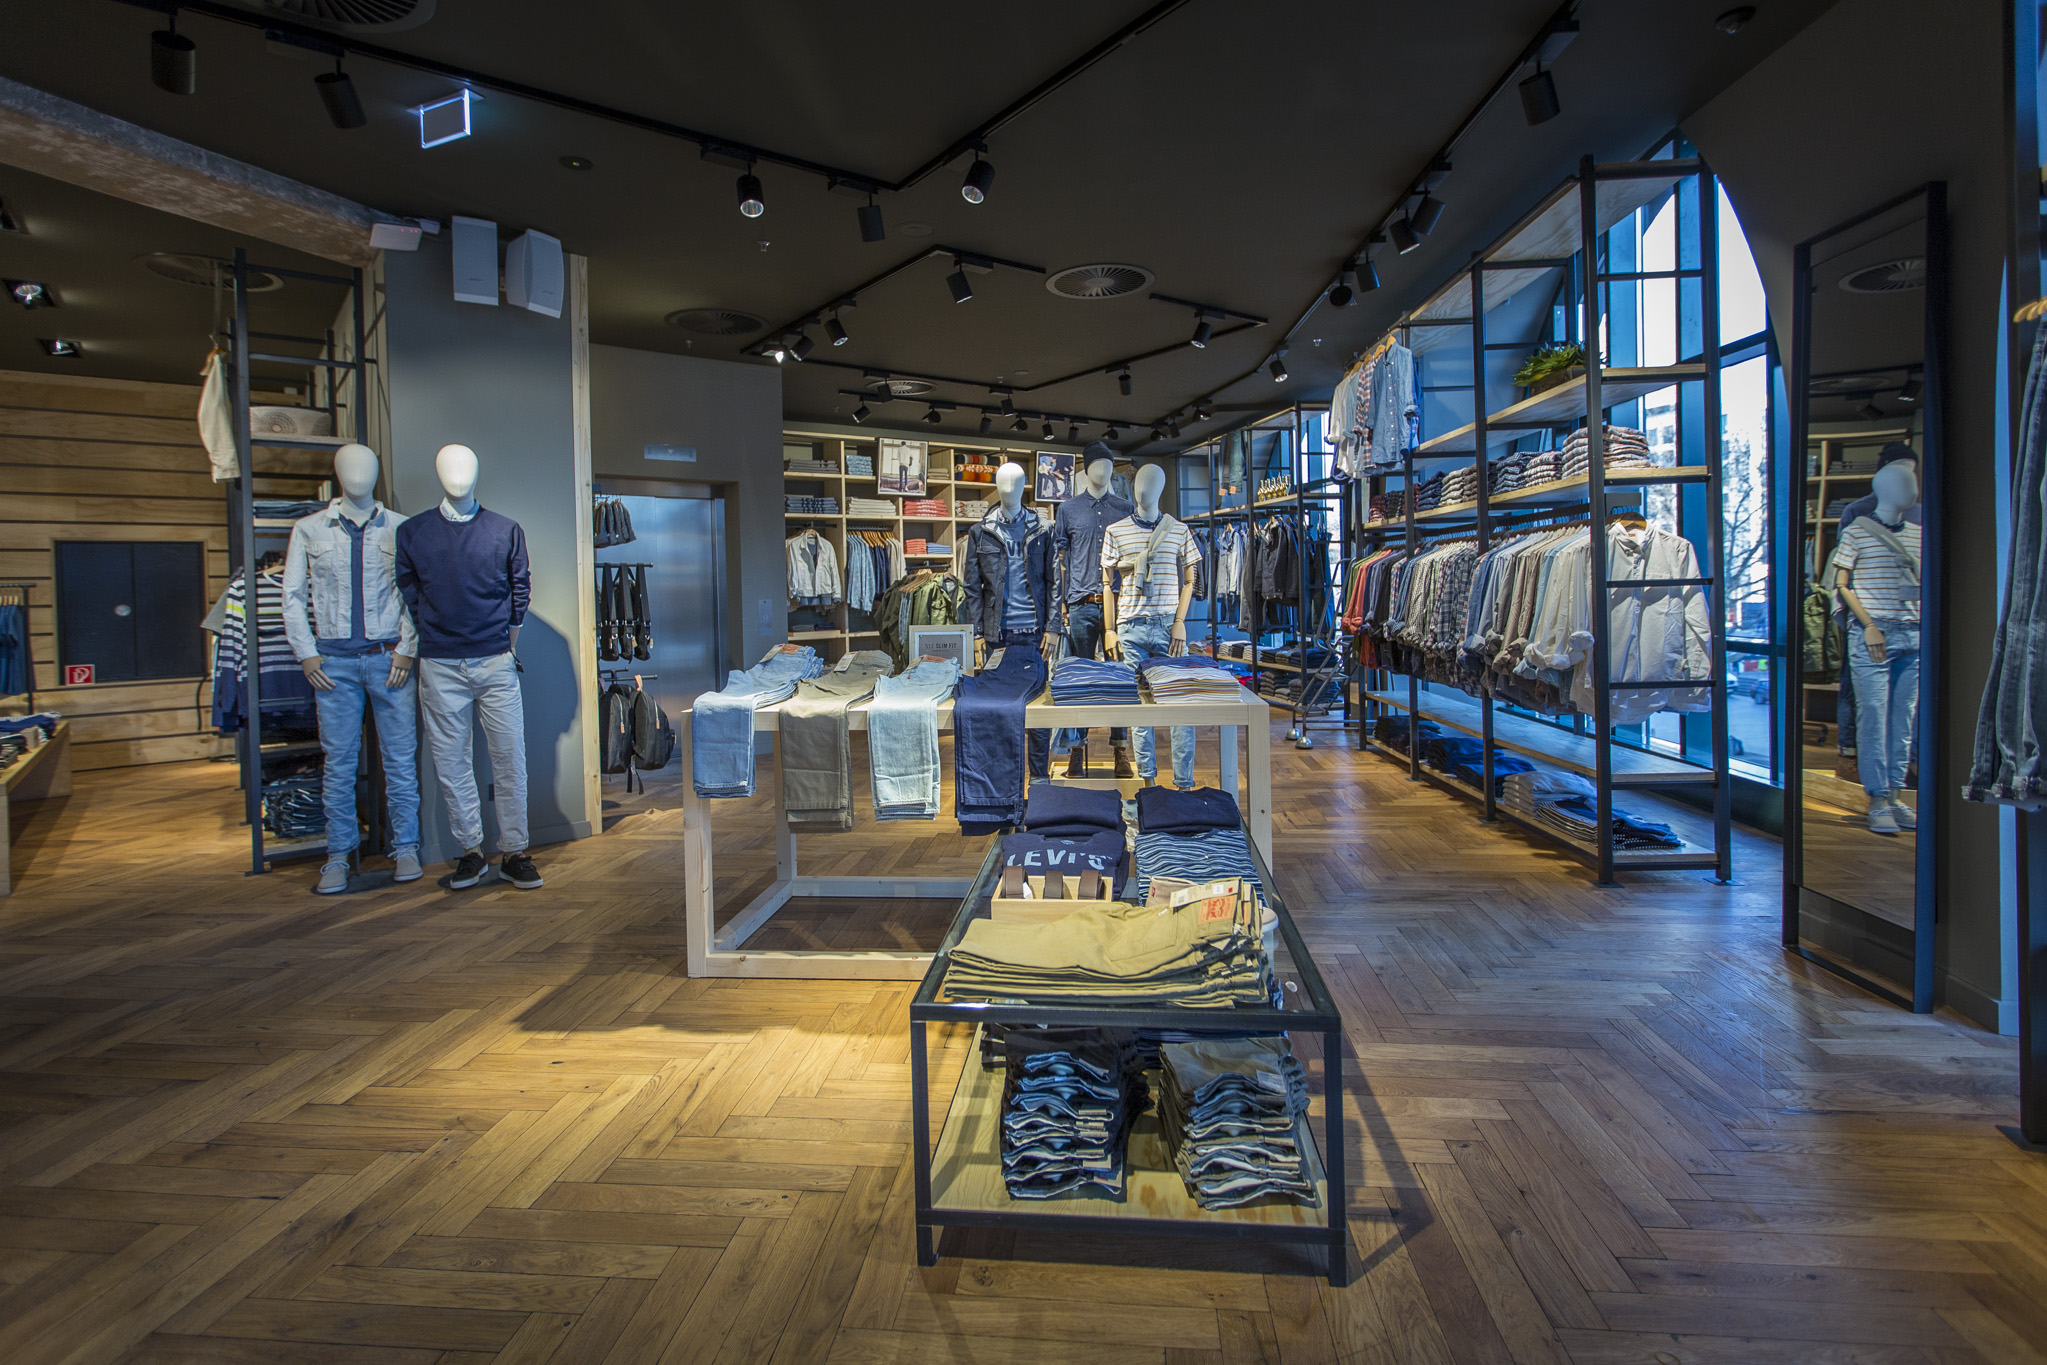 Levis Shop Step Inside The Renovated Levi's Berlin Store